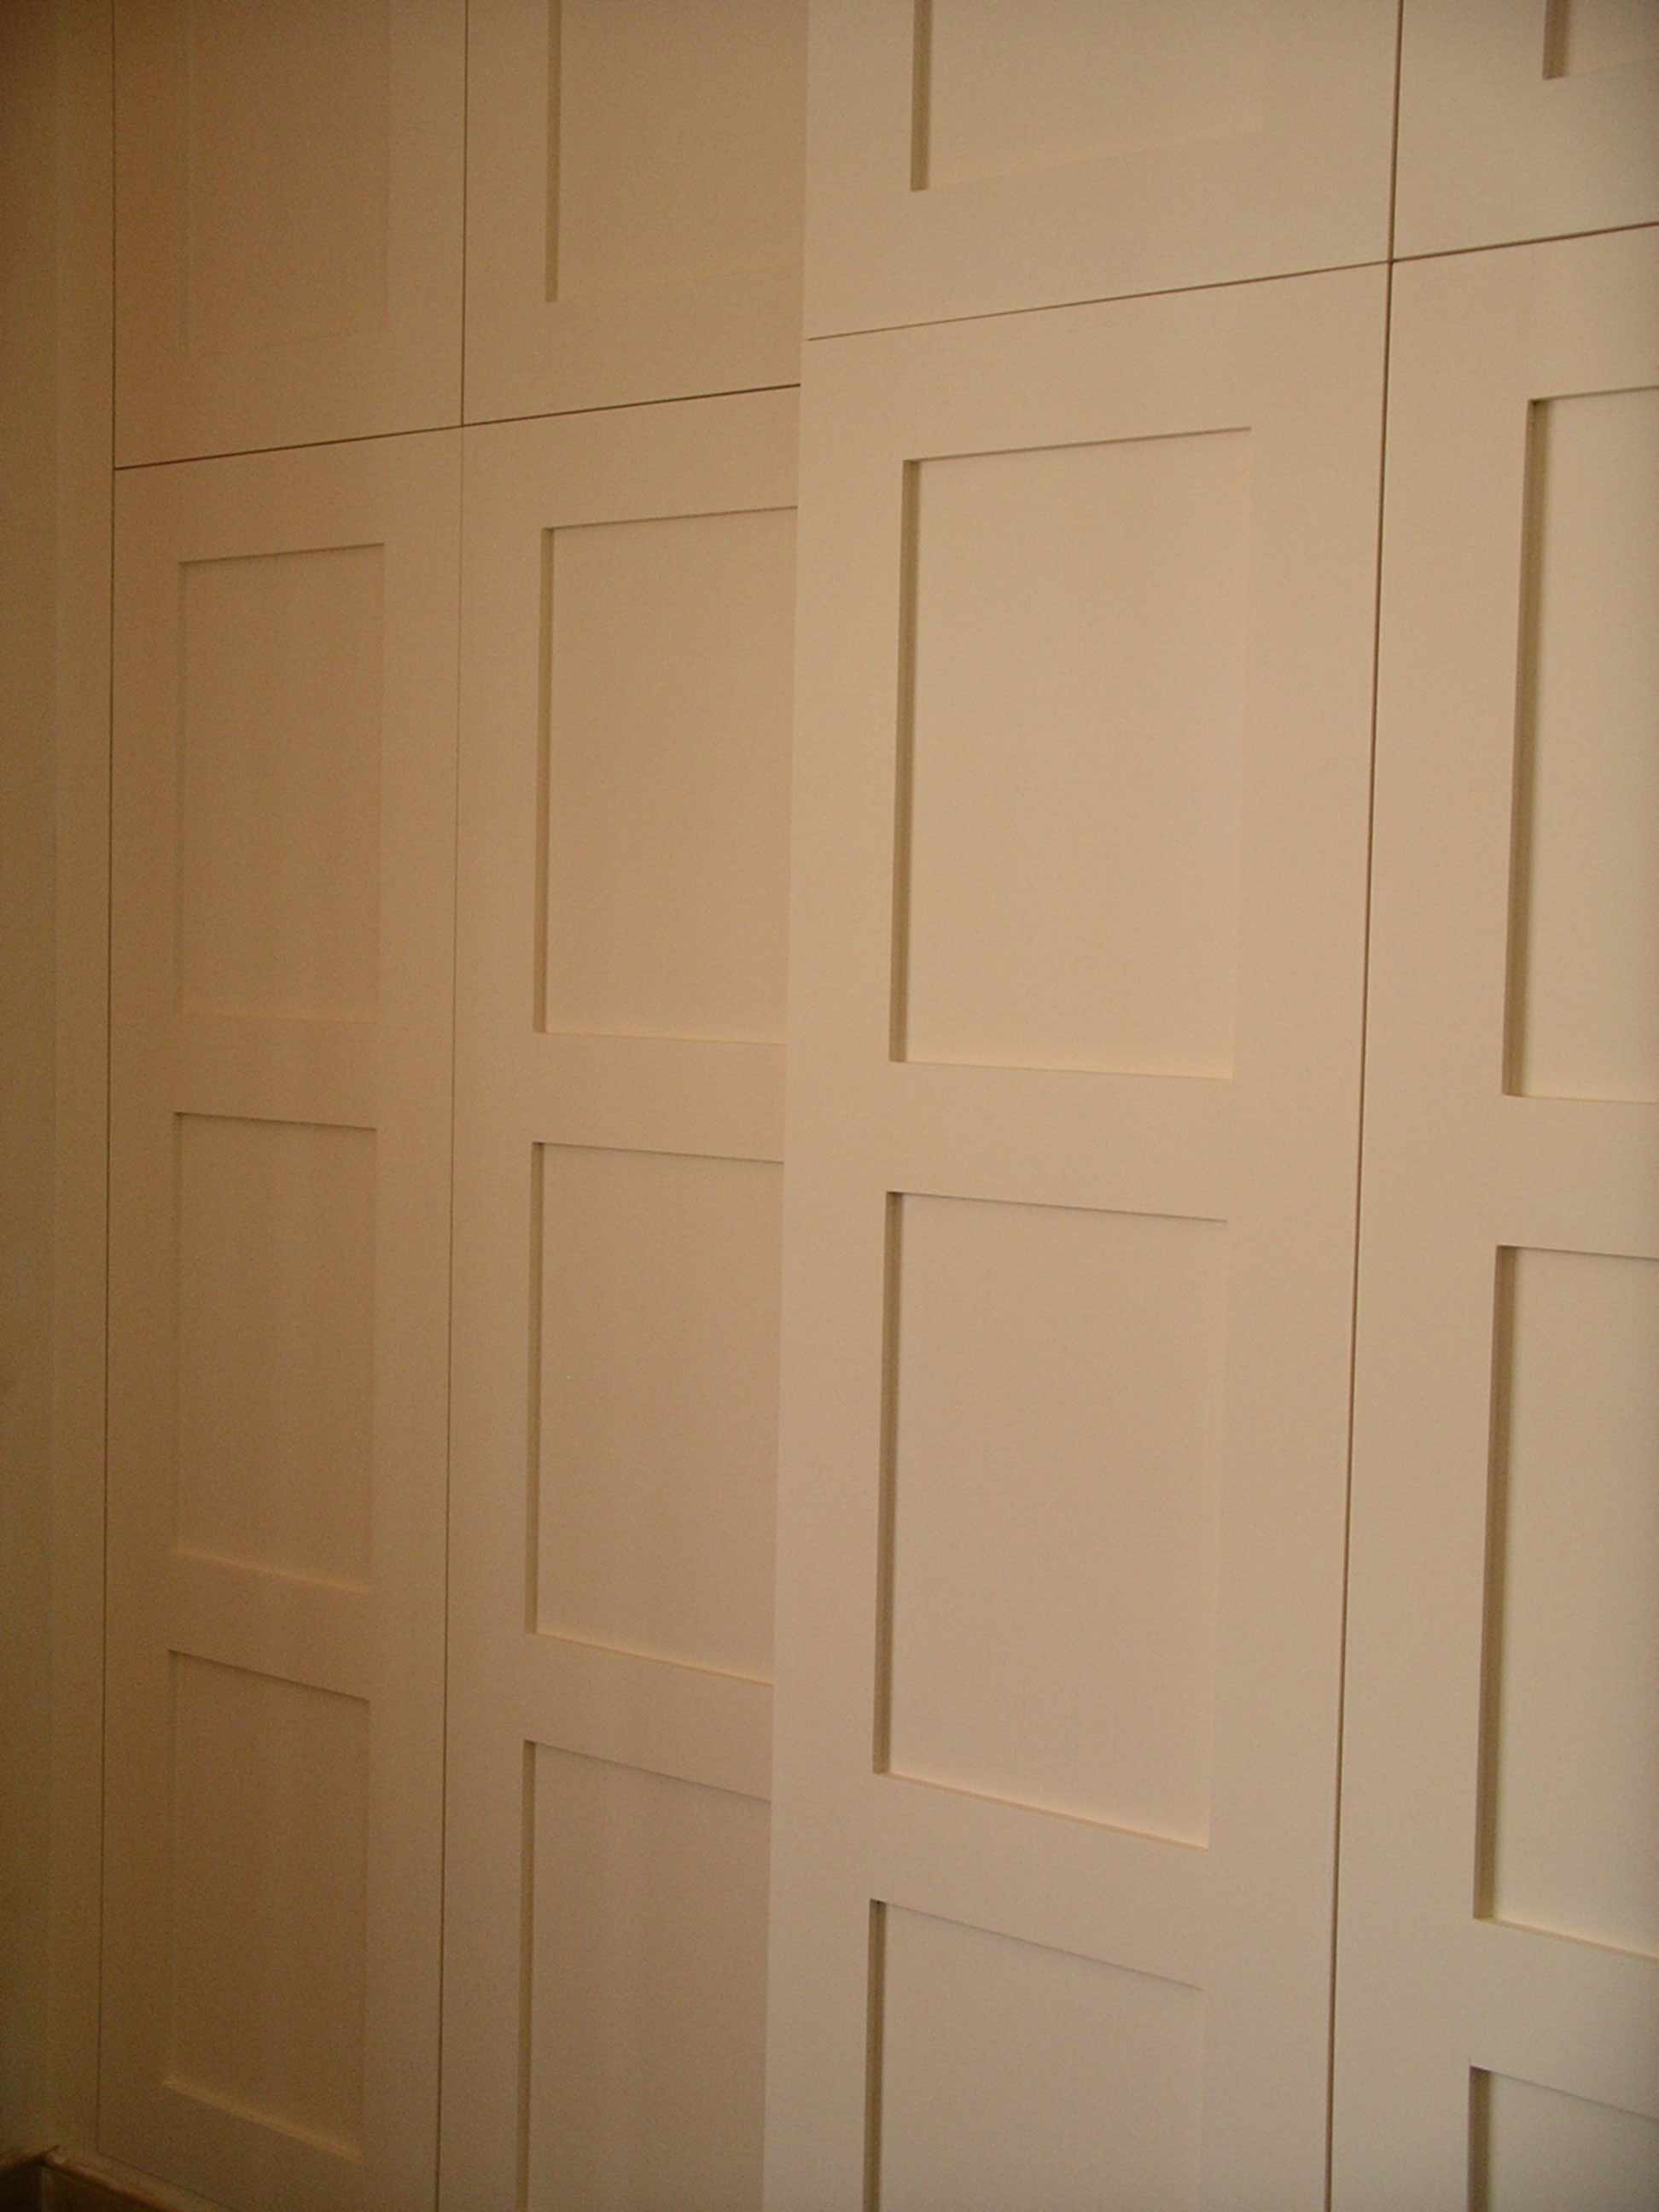 wardrobe hidden behind library panelling